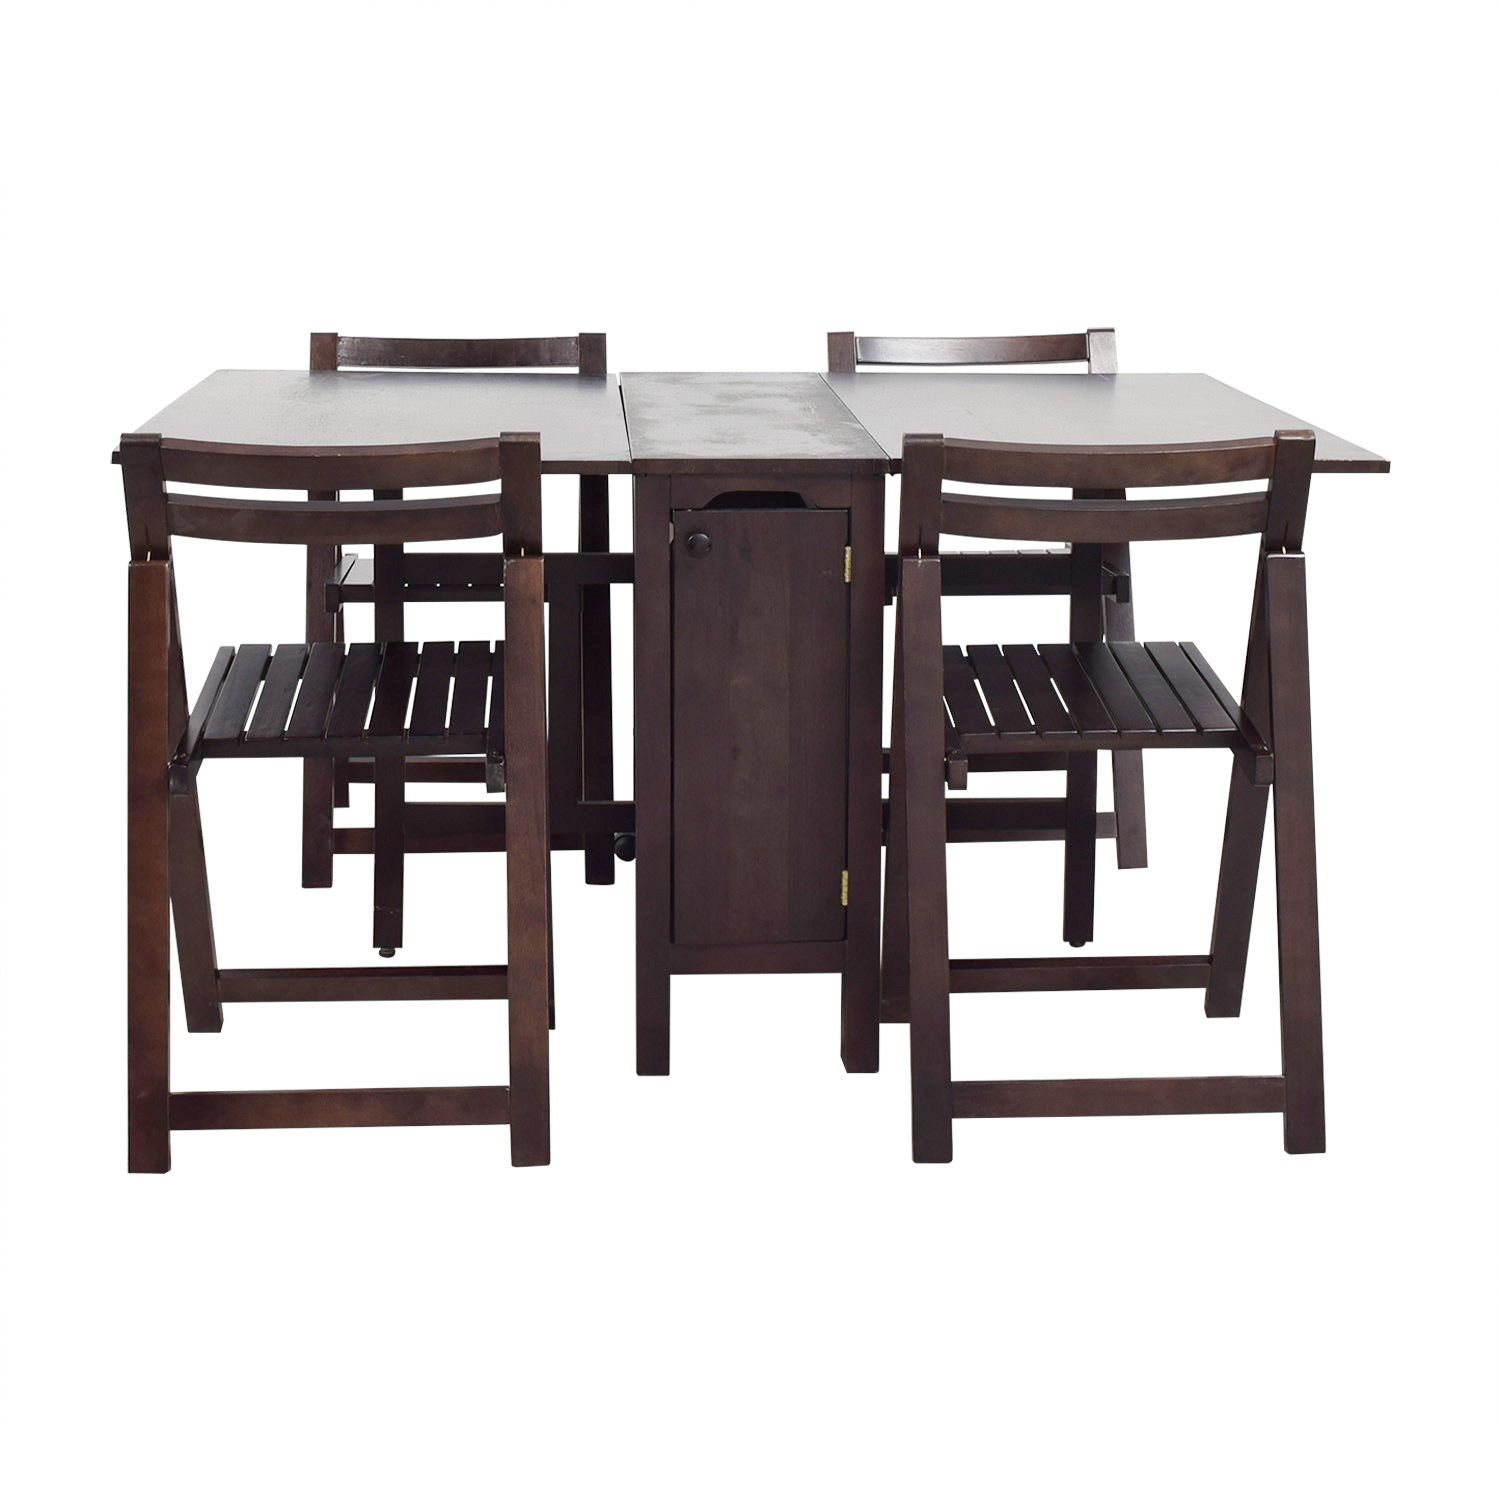 chairs wood setting sizing india table within bamboo x folding wooden trendy four set furniture space simple saving and design